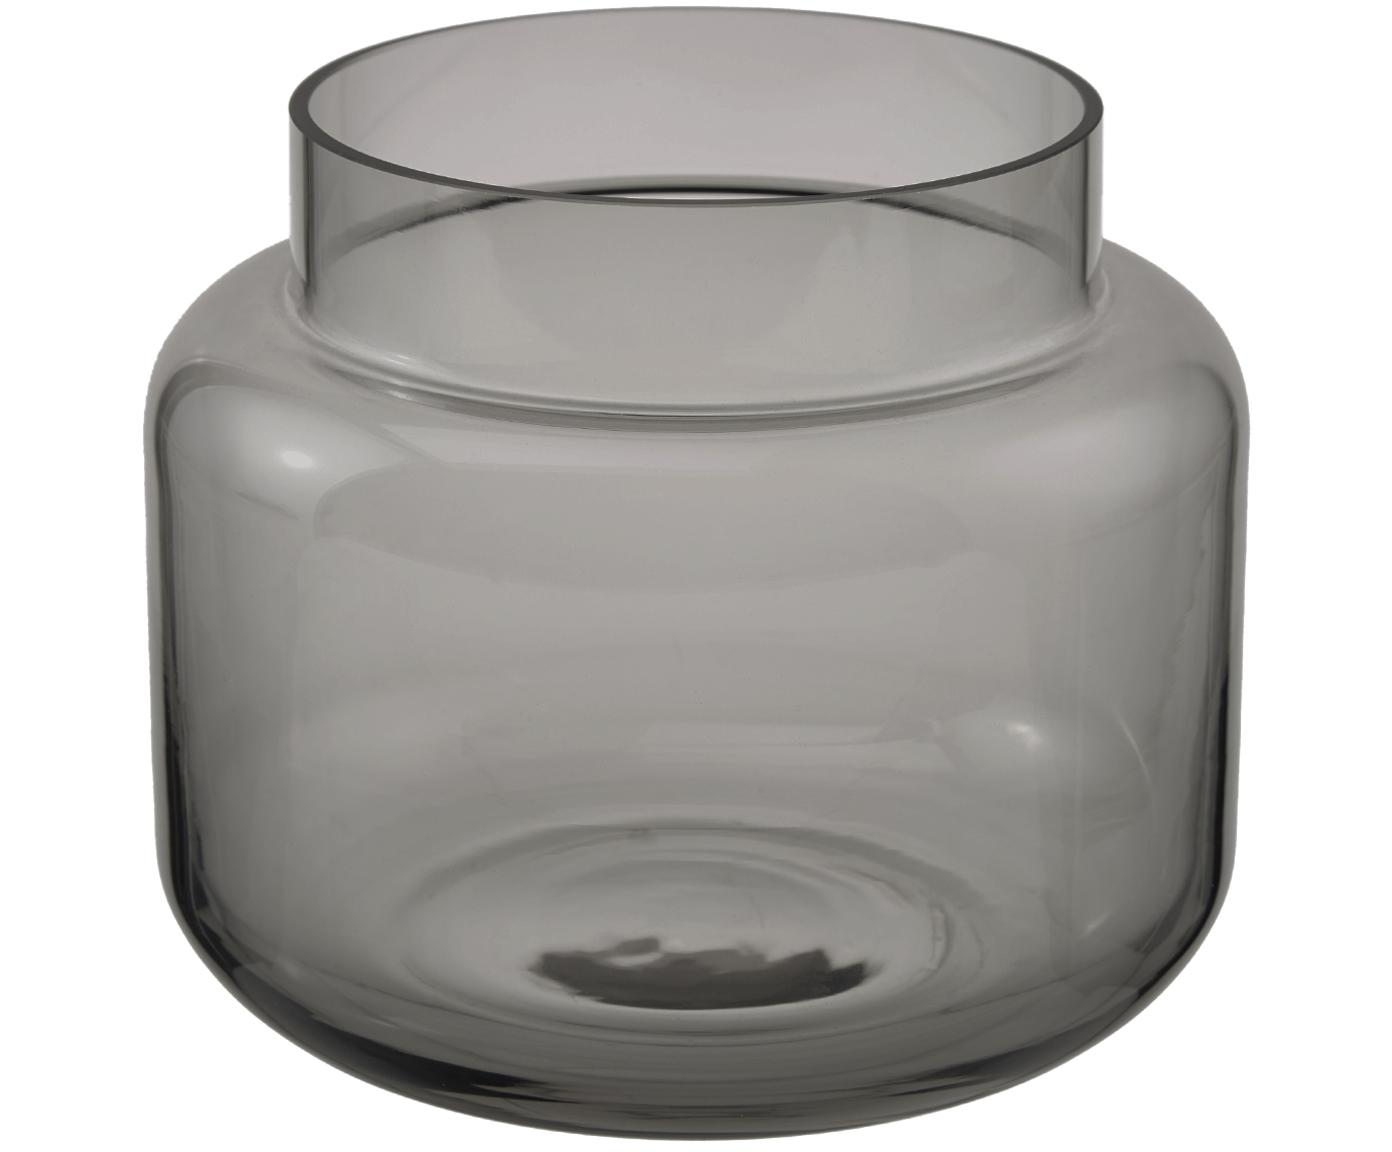 Glas-Vase Lasse, medium, Glas, Grau, transparent, ∅ 16 x H 14 cm